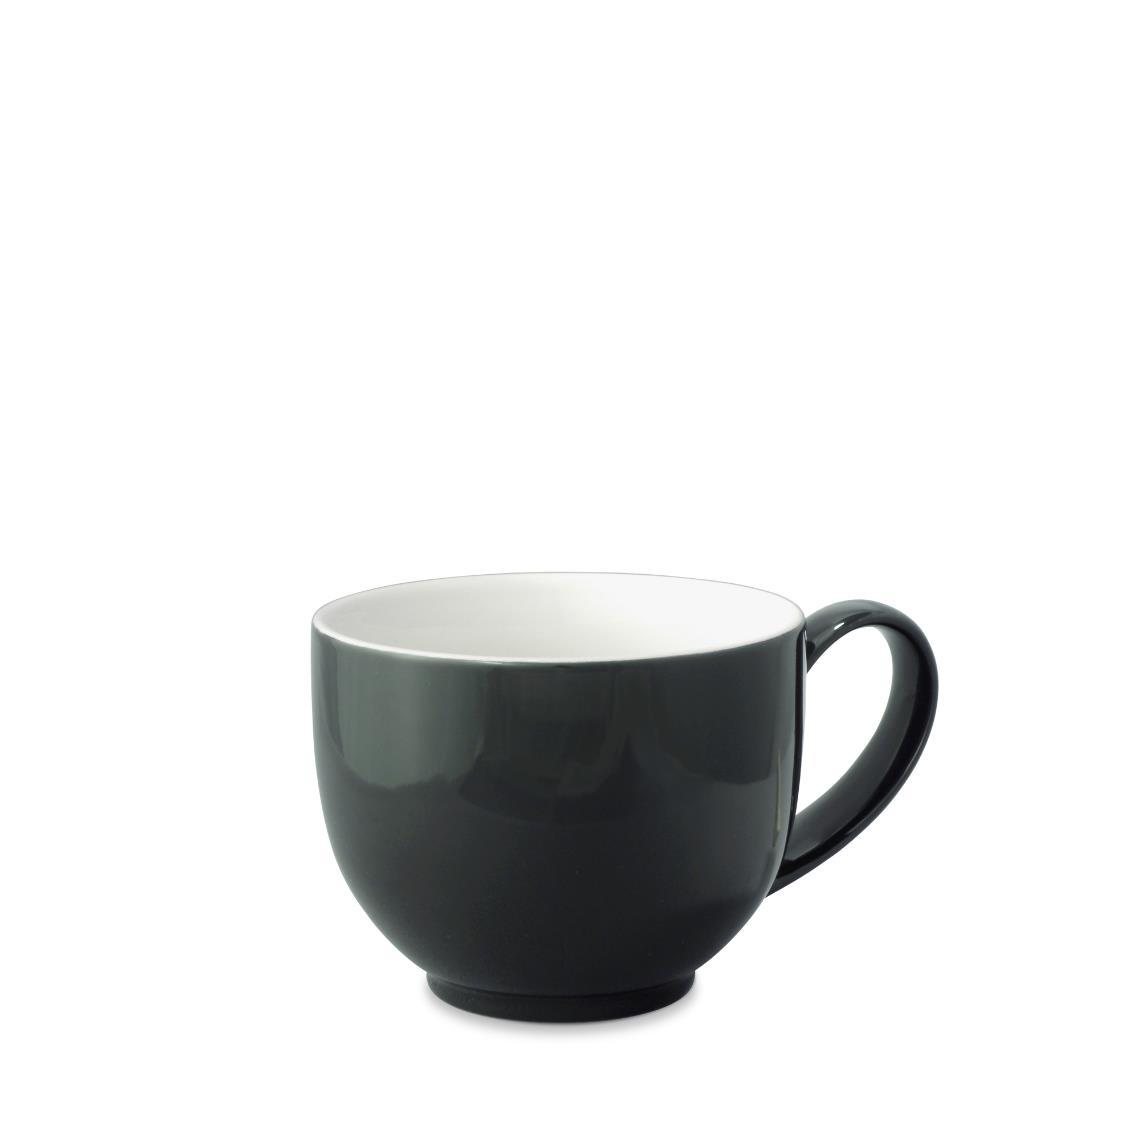 Q Tea Cup with Handle 295ml FL521-BKG